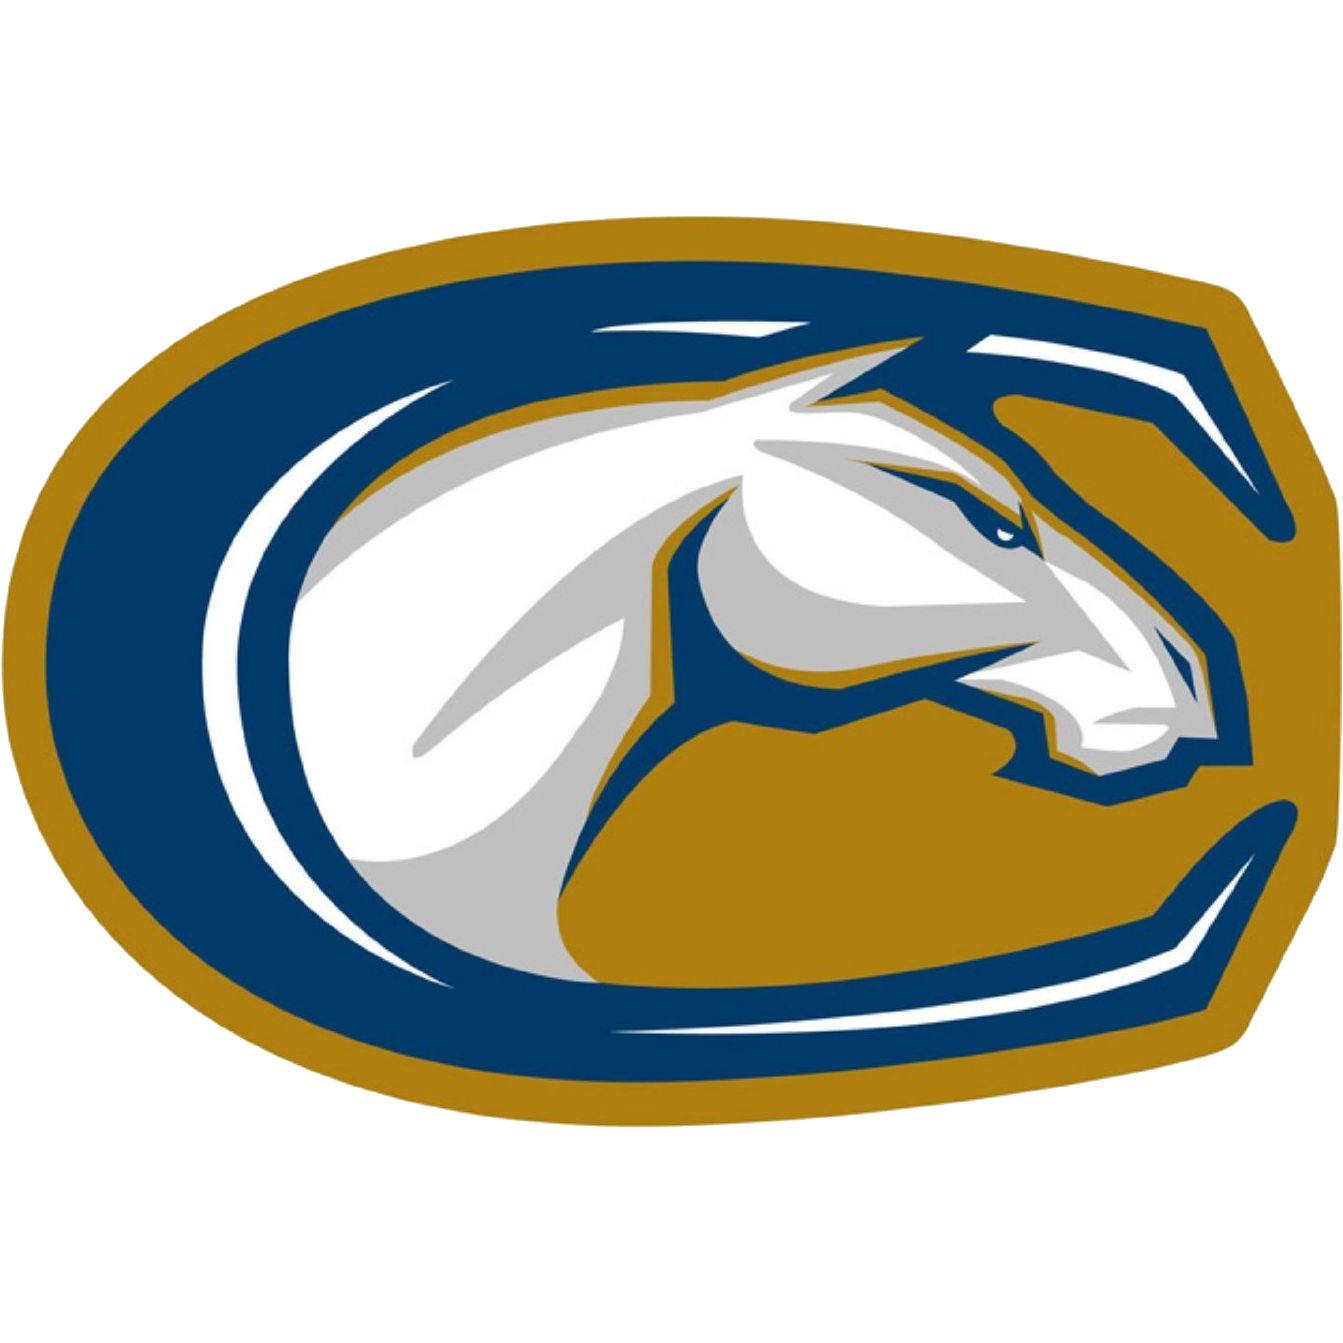 Basketball pavilion clipart clipart UC Davis Aggies men's Basketball- 2018 Schedule, Stats, Team Leaders ... clipart